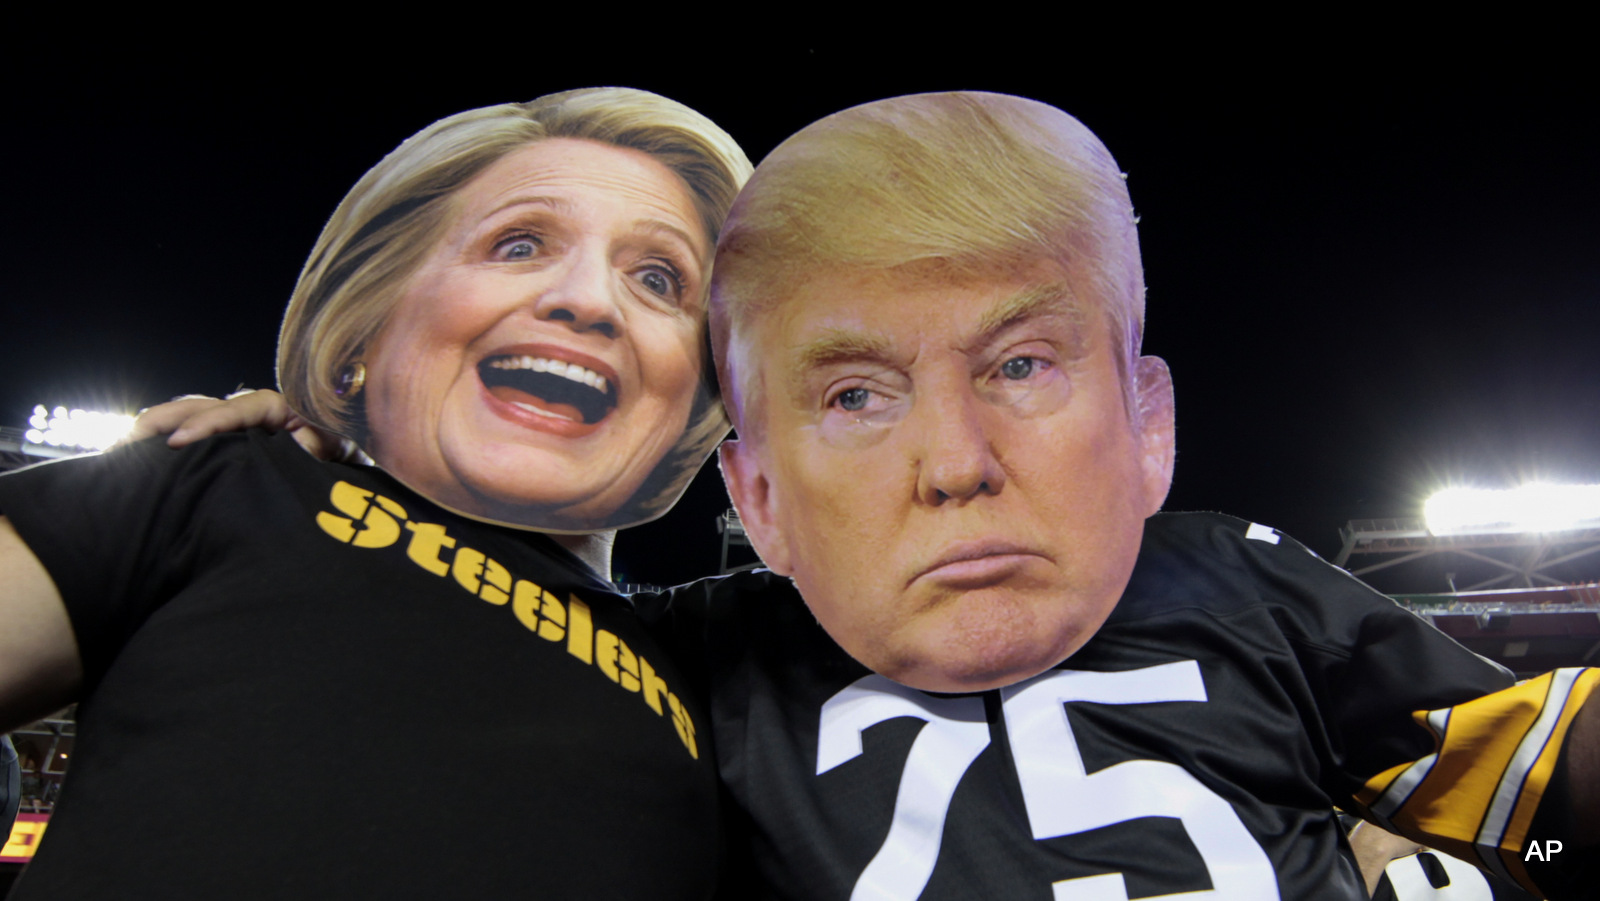 Pittsburgh Steelers fans Brian Picchini (left) and Rusty Kuchta (right) wear presidential candidates Sec. Hillary Clinton and Donald J. Trump masks during the first half of an NFL football game against the Washington Redskins in Landover, Md., Monday, Sept. 12, 2016.